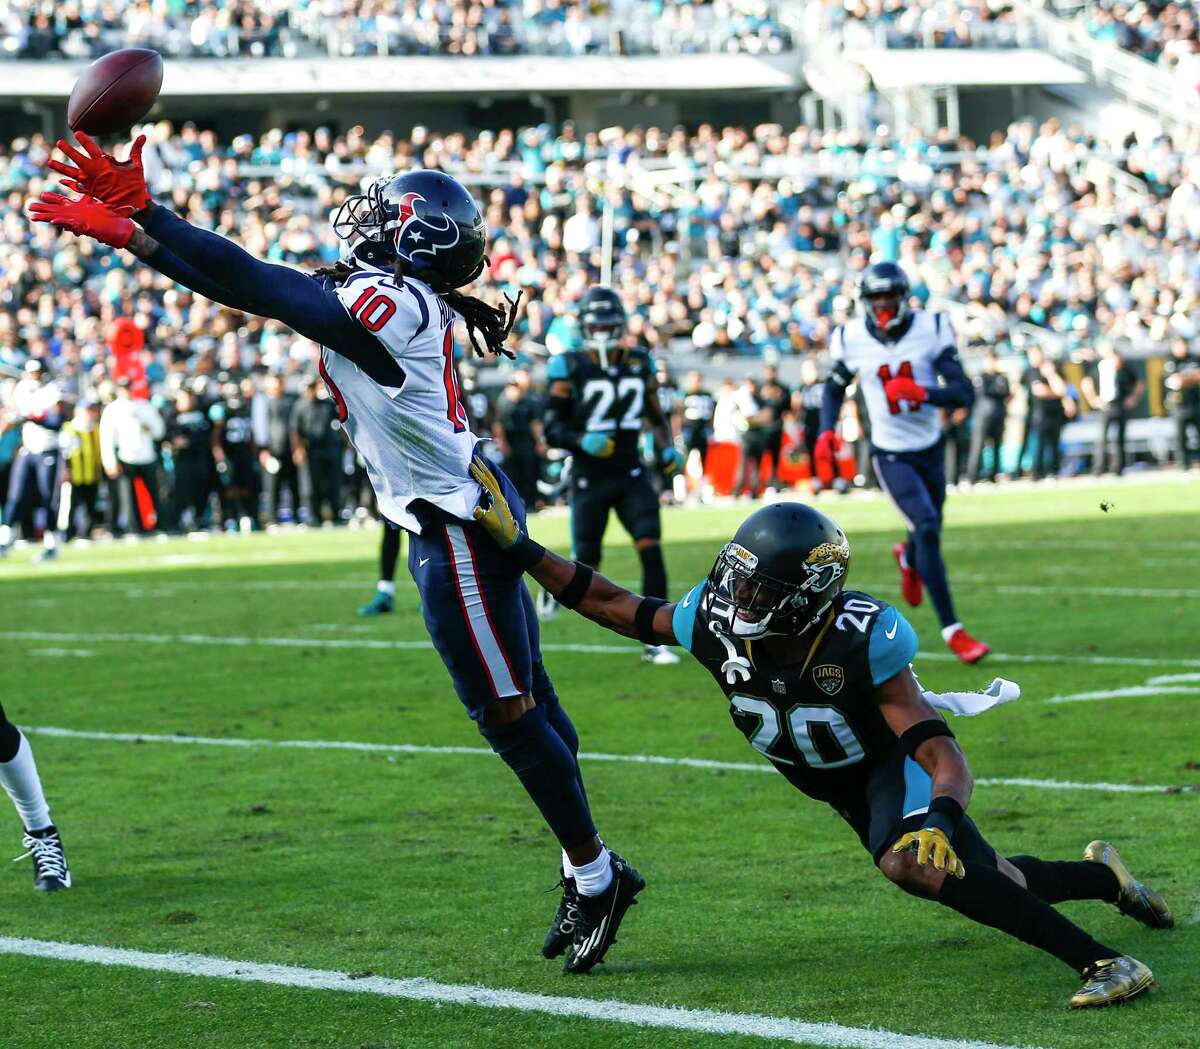 5 STATEMENT GAMES FOR TEXANS IN 2018 1. Jacksonville The Jaguars finished 10-6, won the AFC South, beat Buffalo and Pittsburgh in the playoffs and lost in the AFC Championship Game at New England. Jacksonville swept the Texans, who have to beat the Jaguars if they plan to dethrone them as division champions.